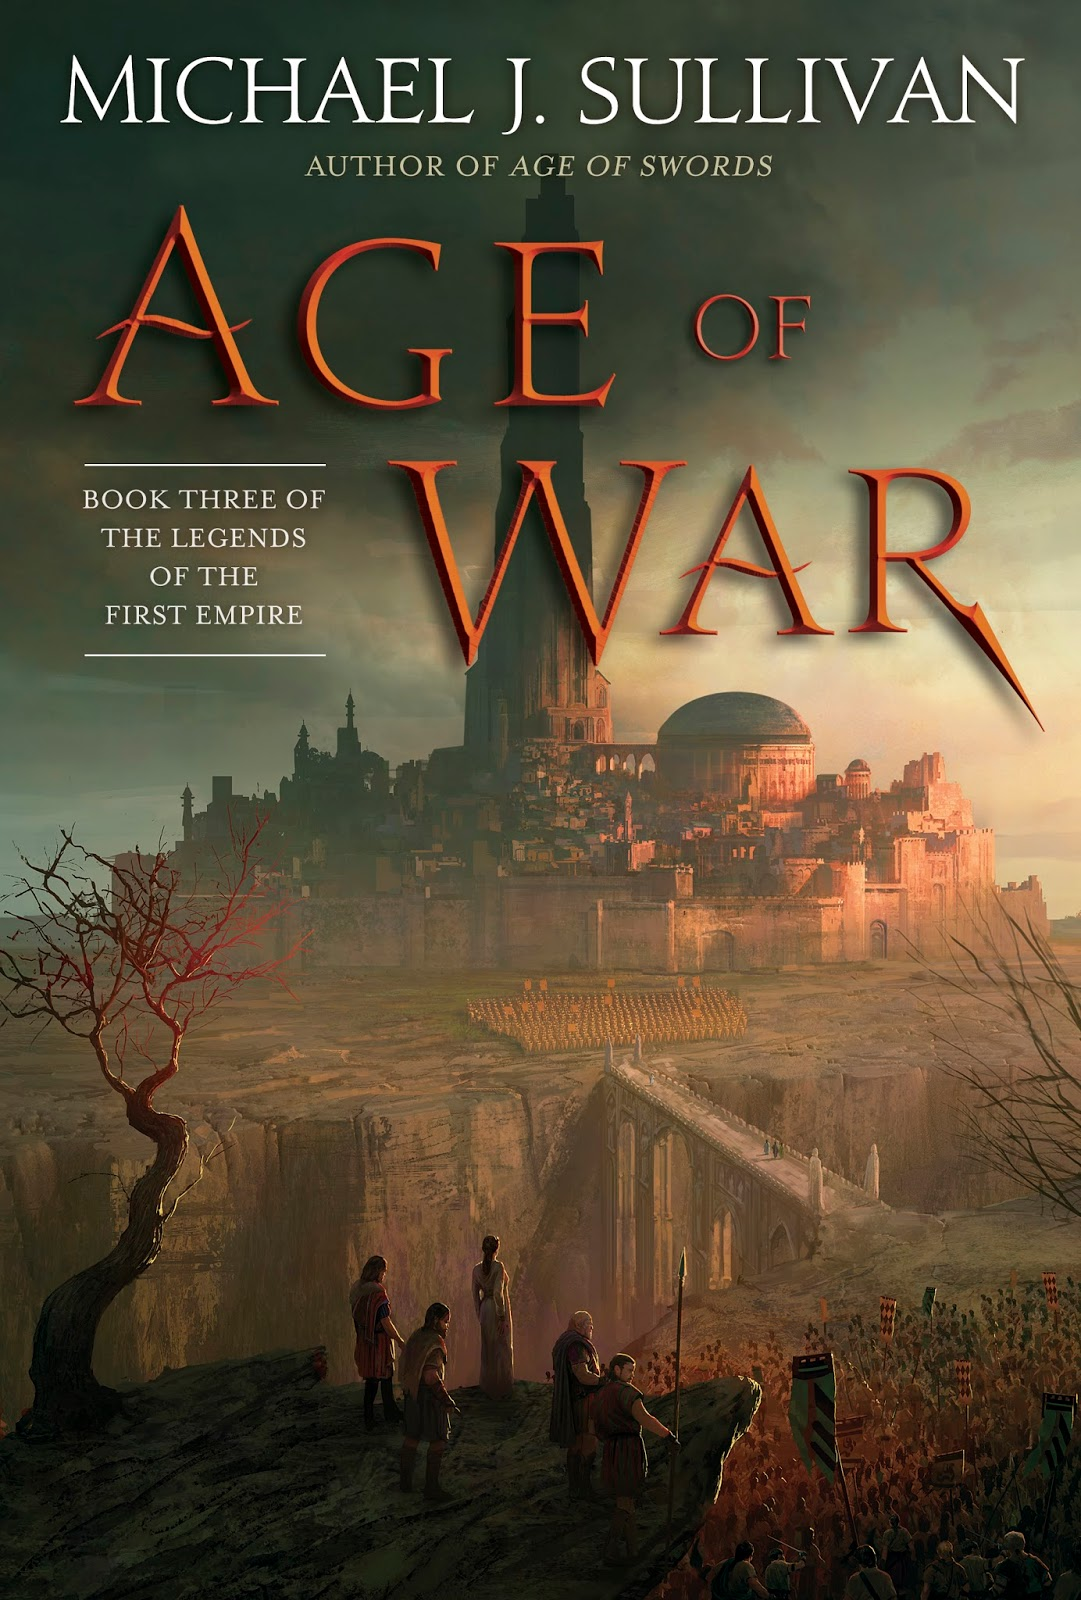 Cover Reveal And Teaser Extract From Michael J Sullivan's Age Of War  (updated)